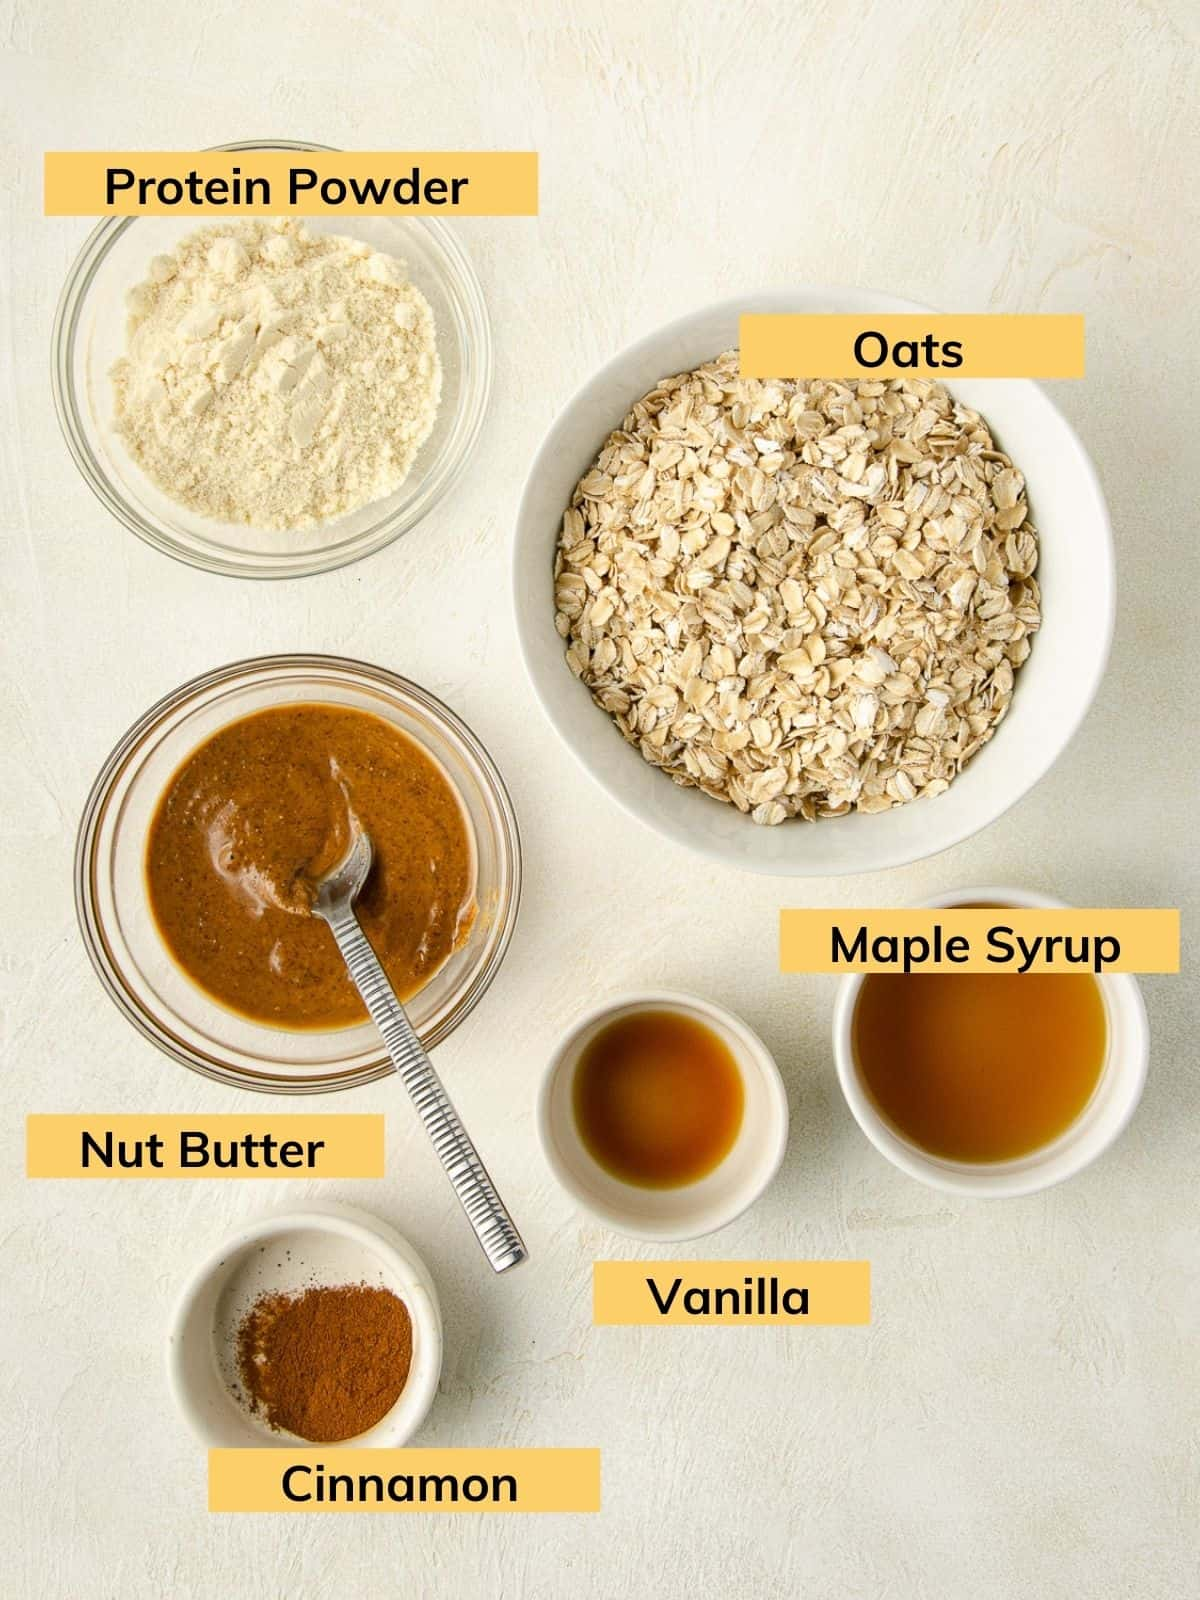 All of the ingredients needed for granola: oats, maple syrup, vanilla, cinnamon, nut butter and protein powder.